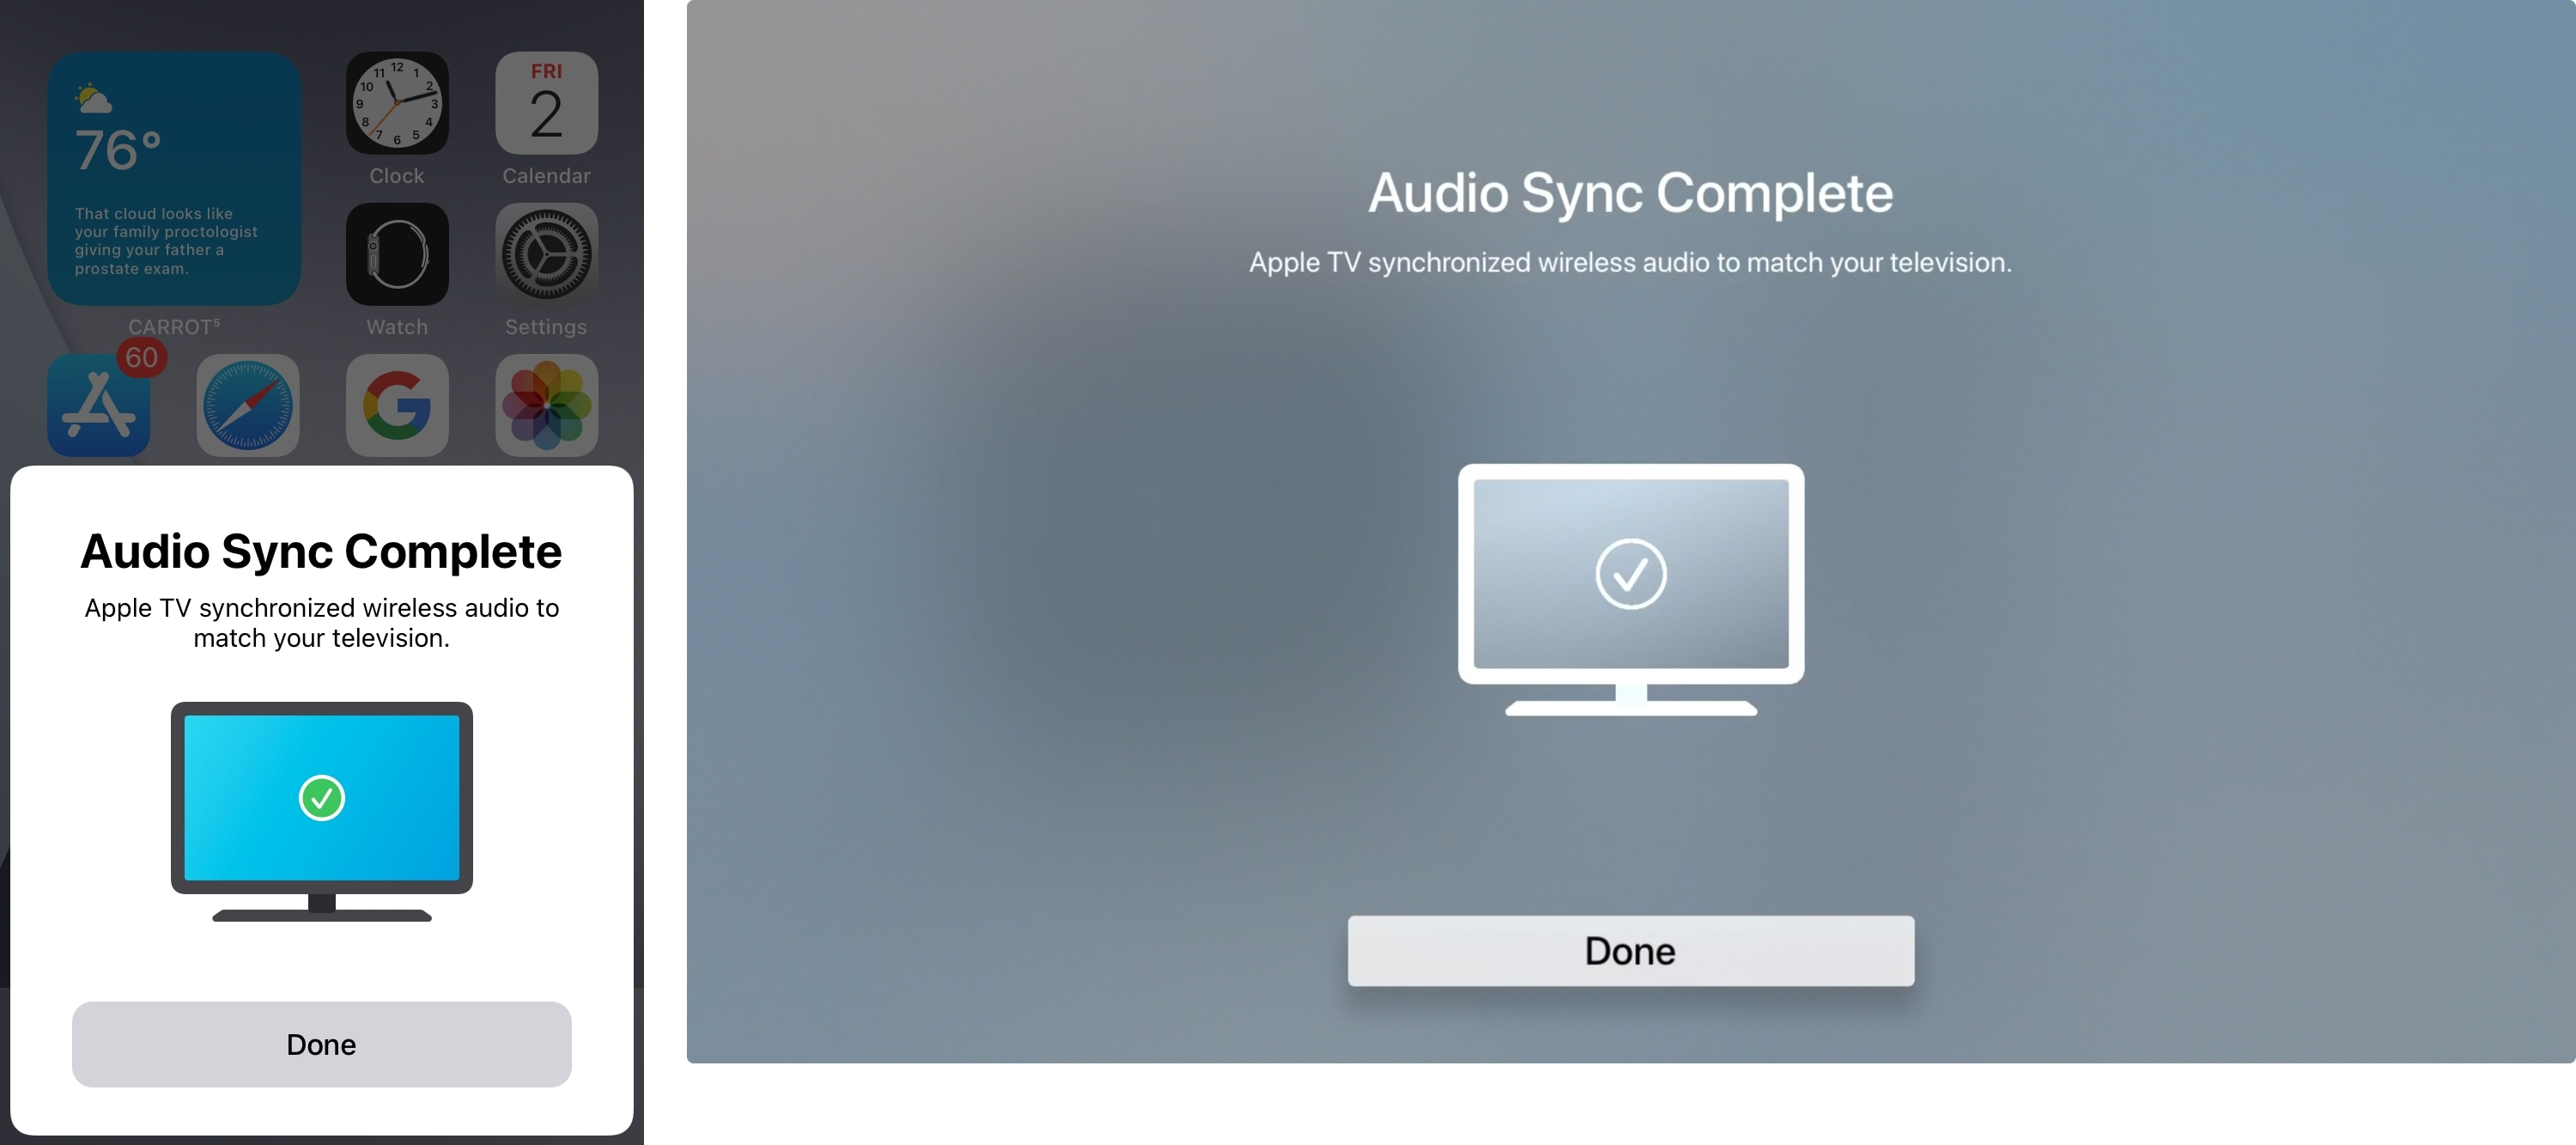 Completed Wireless Audio Sync on iPhone and Apple TV